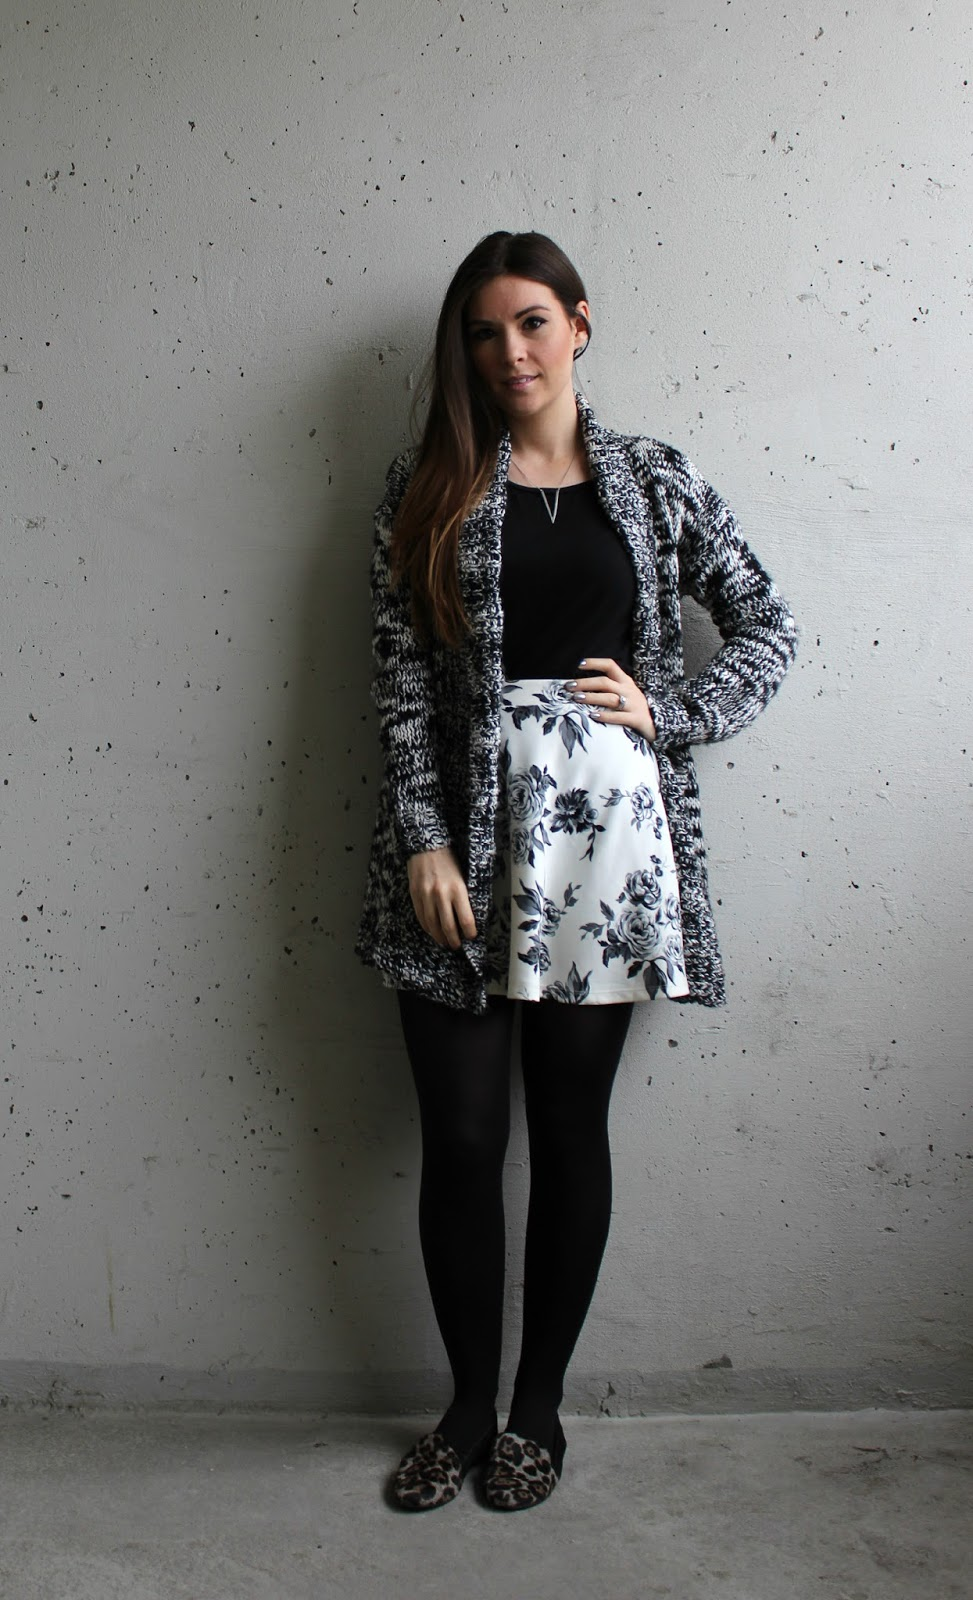 salt and pepper cardigan and floral skirt